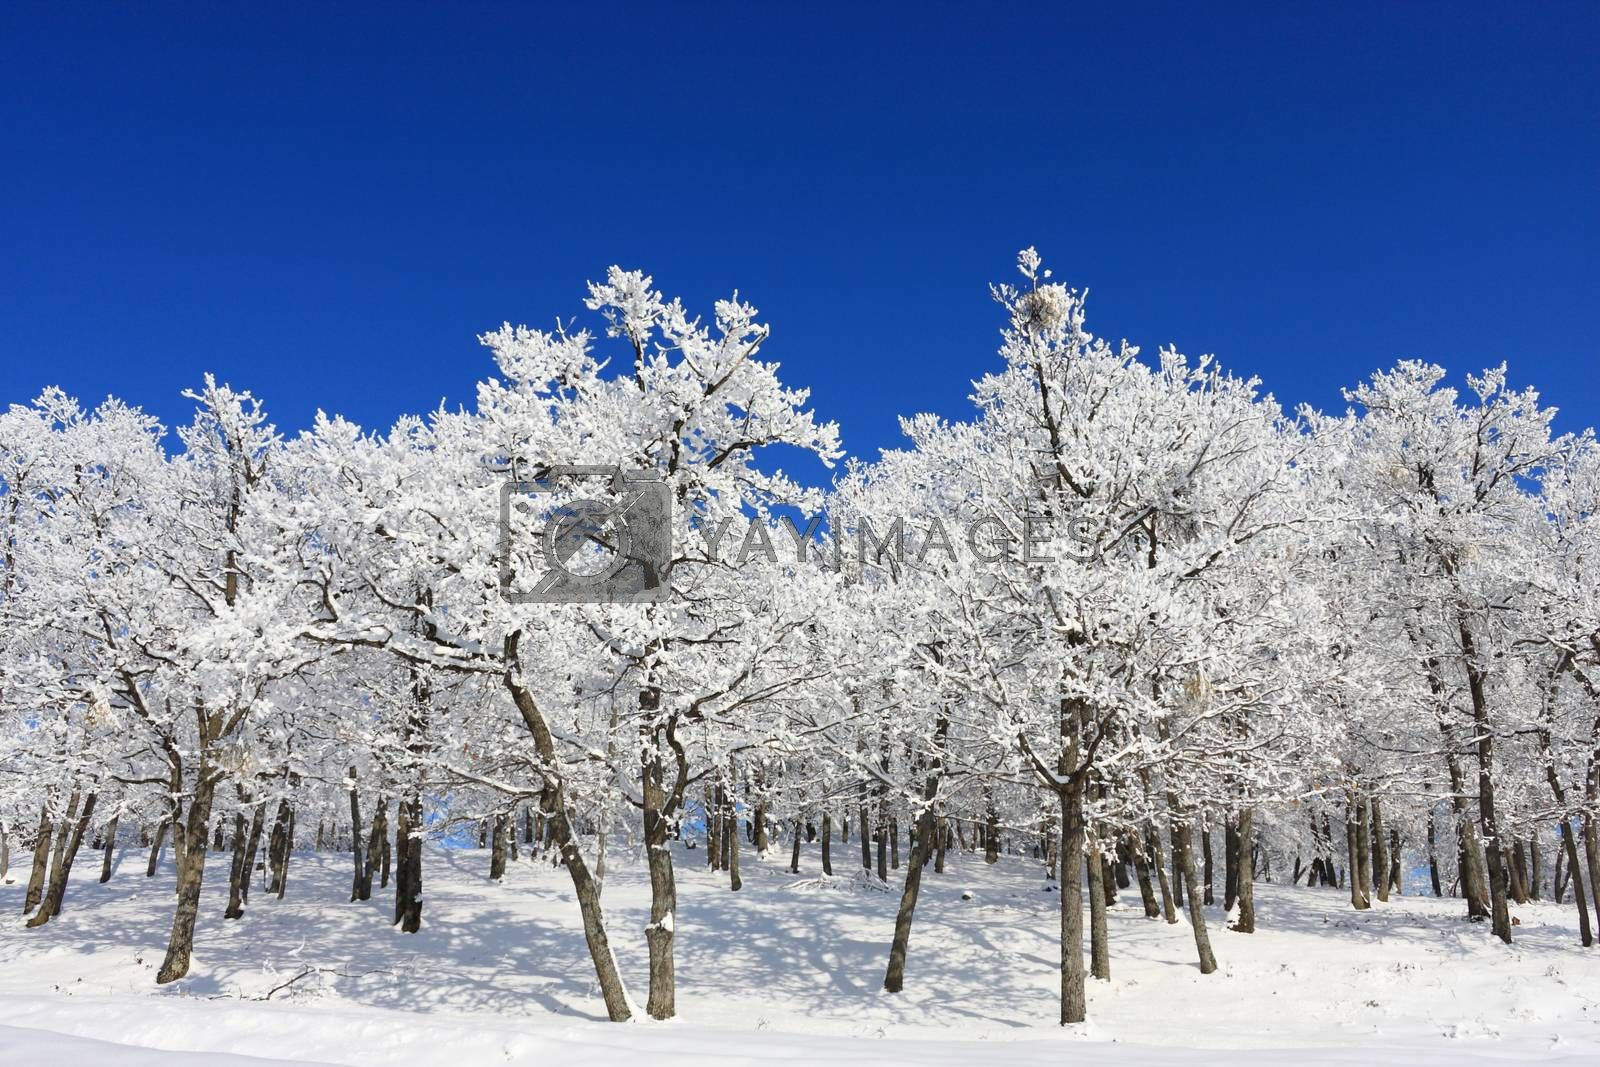 Snow Forest on Clear Blue Sky by shoricelu